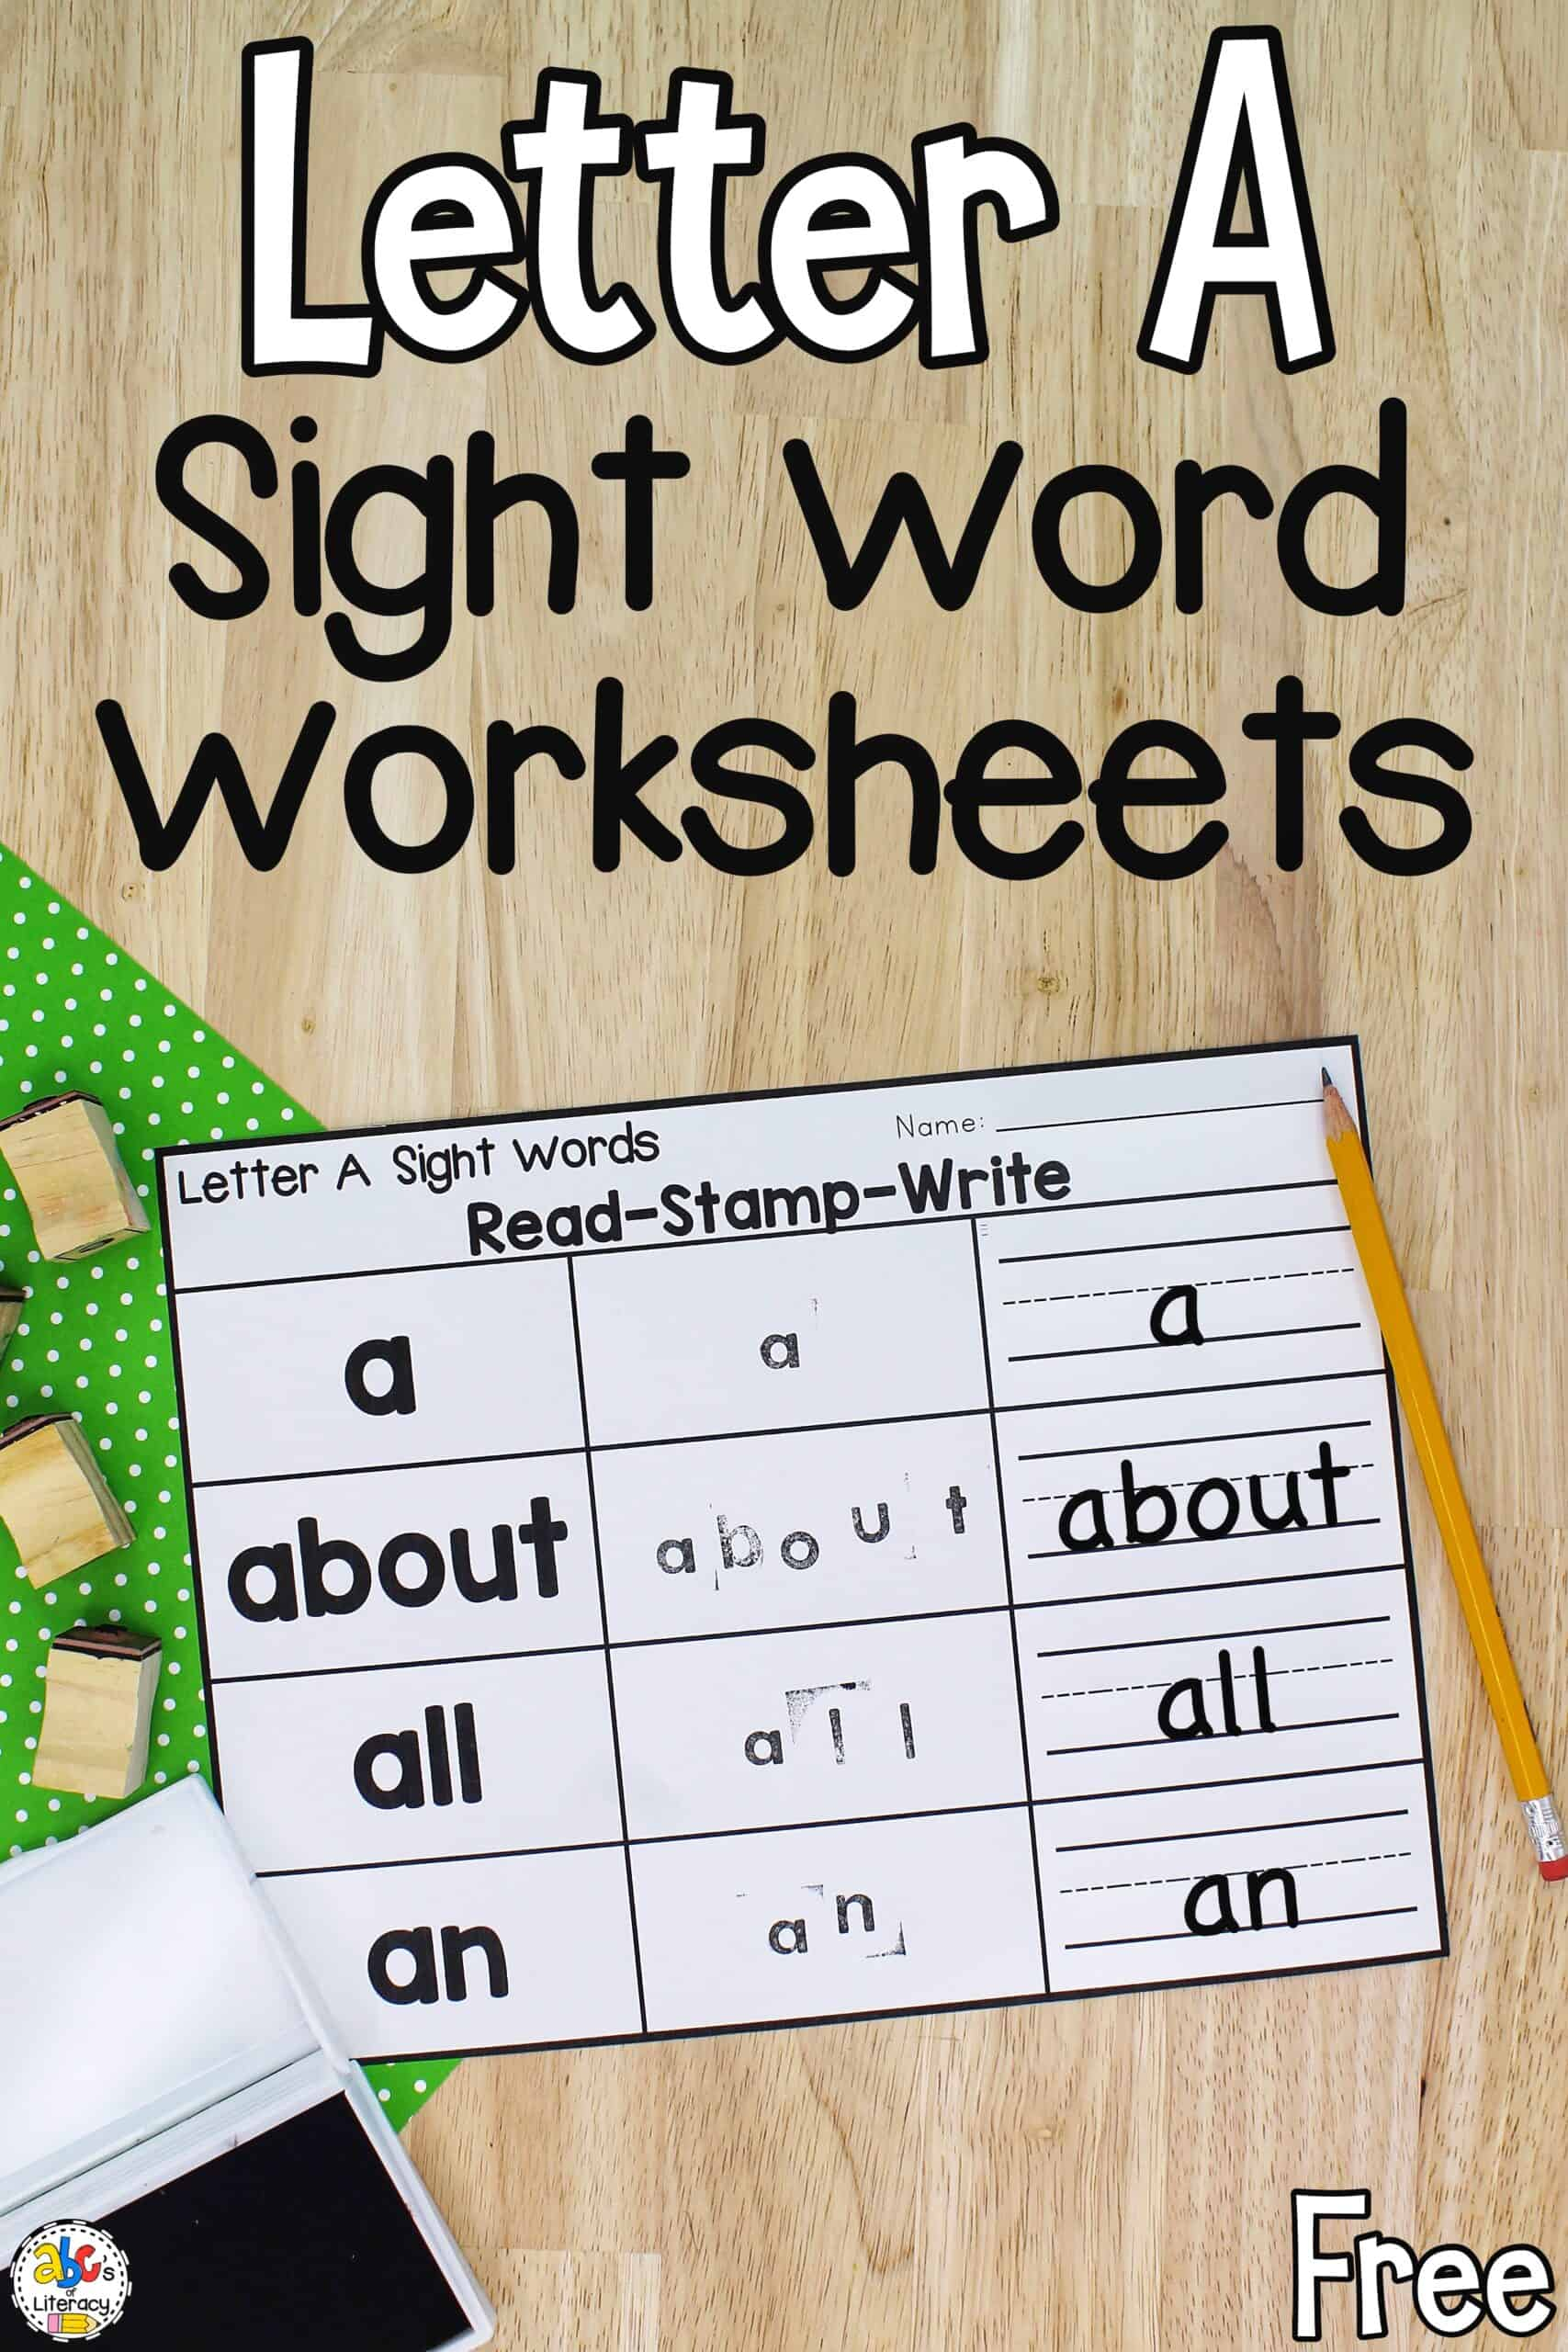 Letter A Sight Words